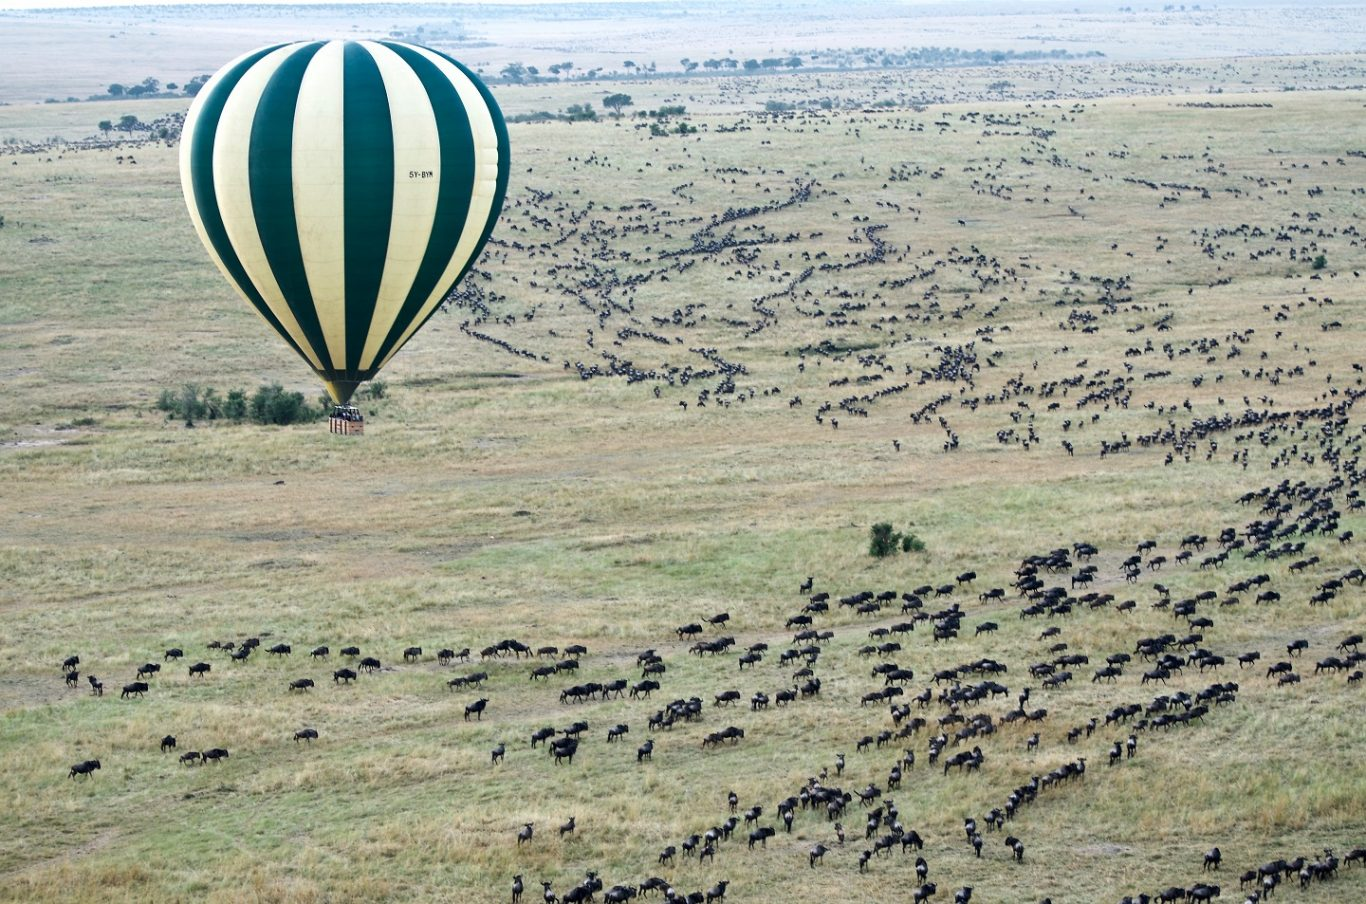 Balloon Safaris in Serengeti